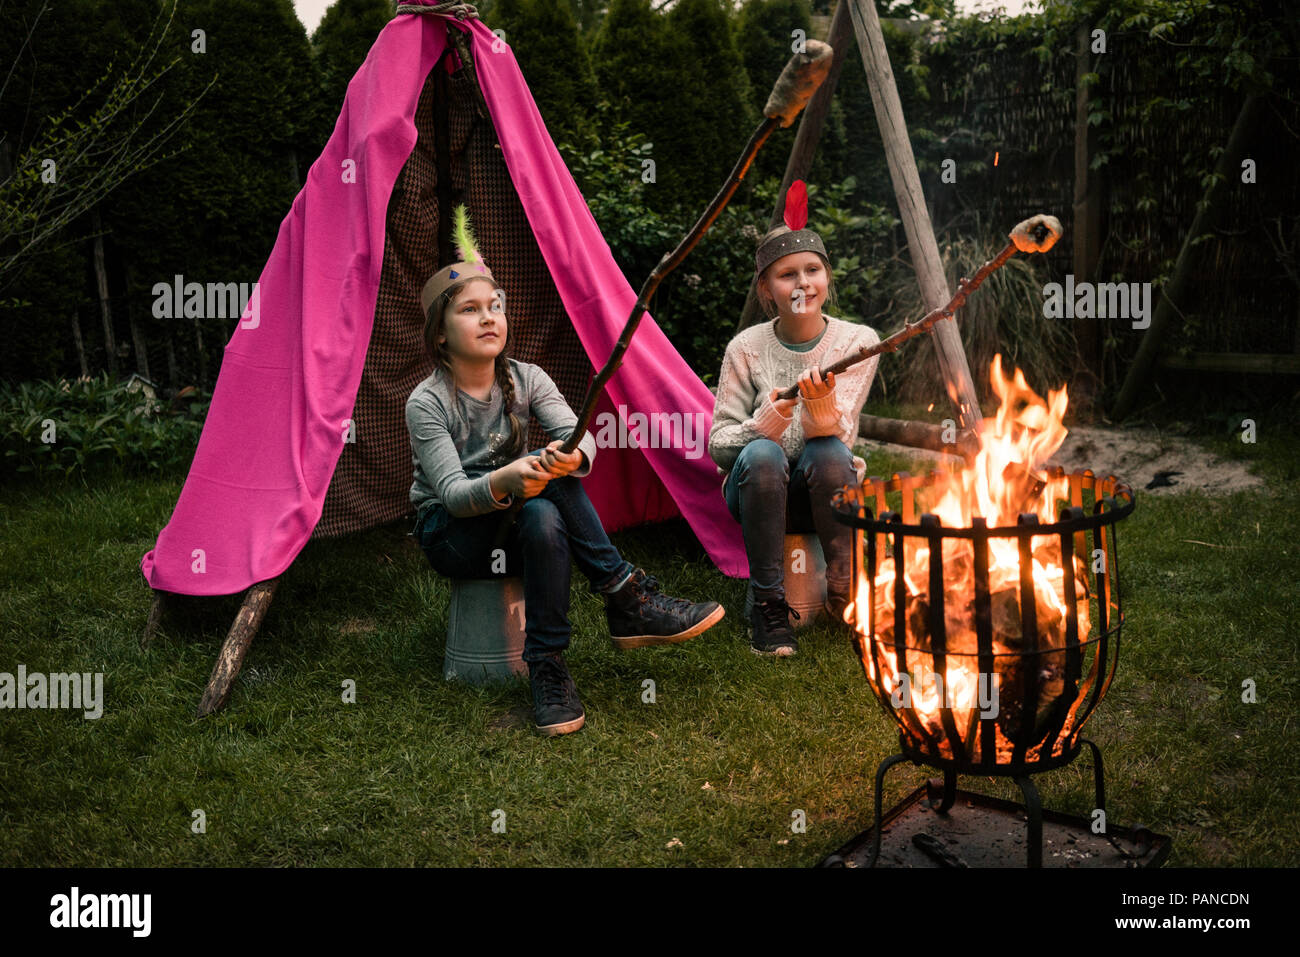 Two girls wearing feather headdress, with stock bread at camp fire - Stock Image